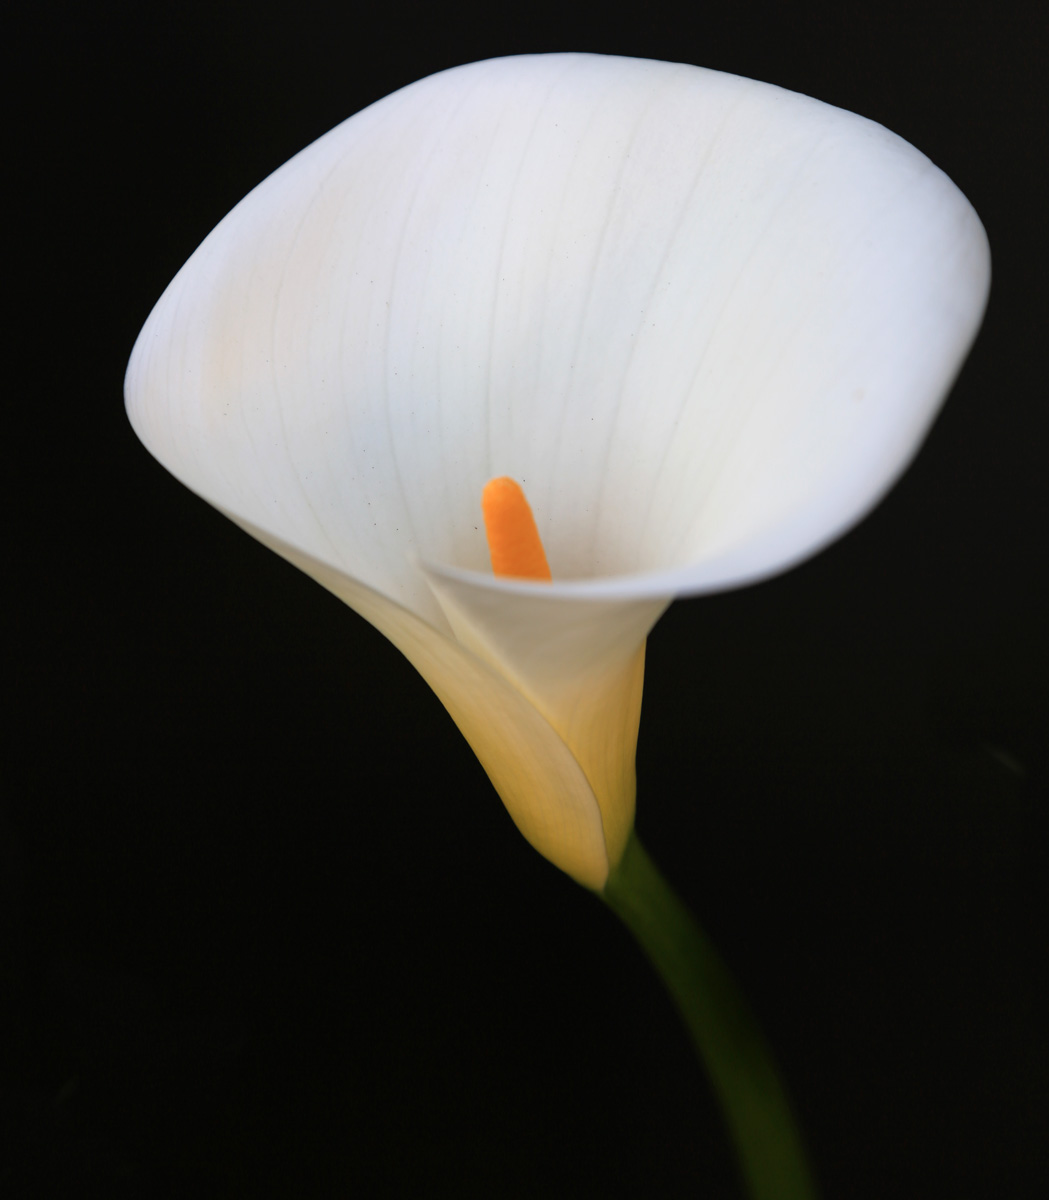 The Cala Lily